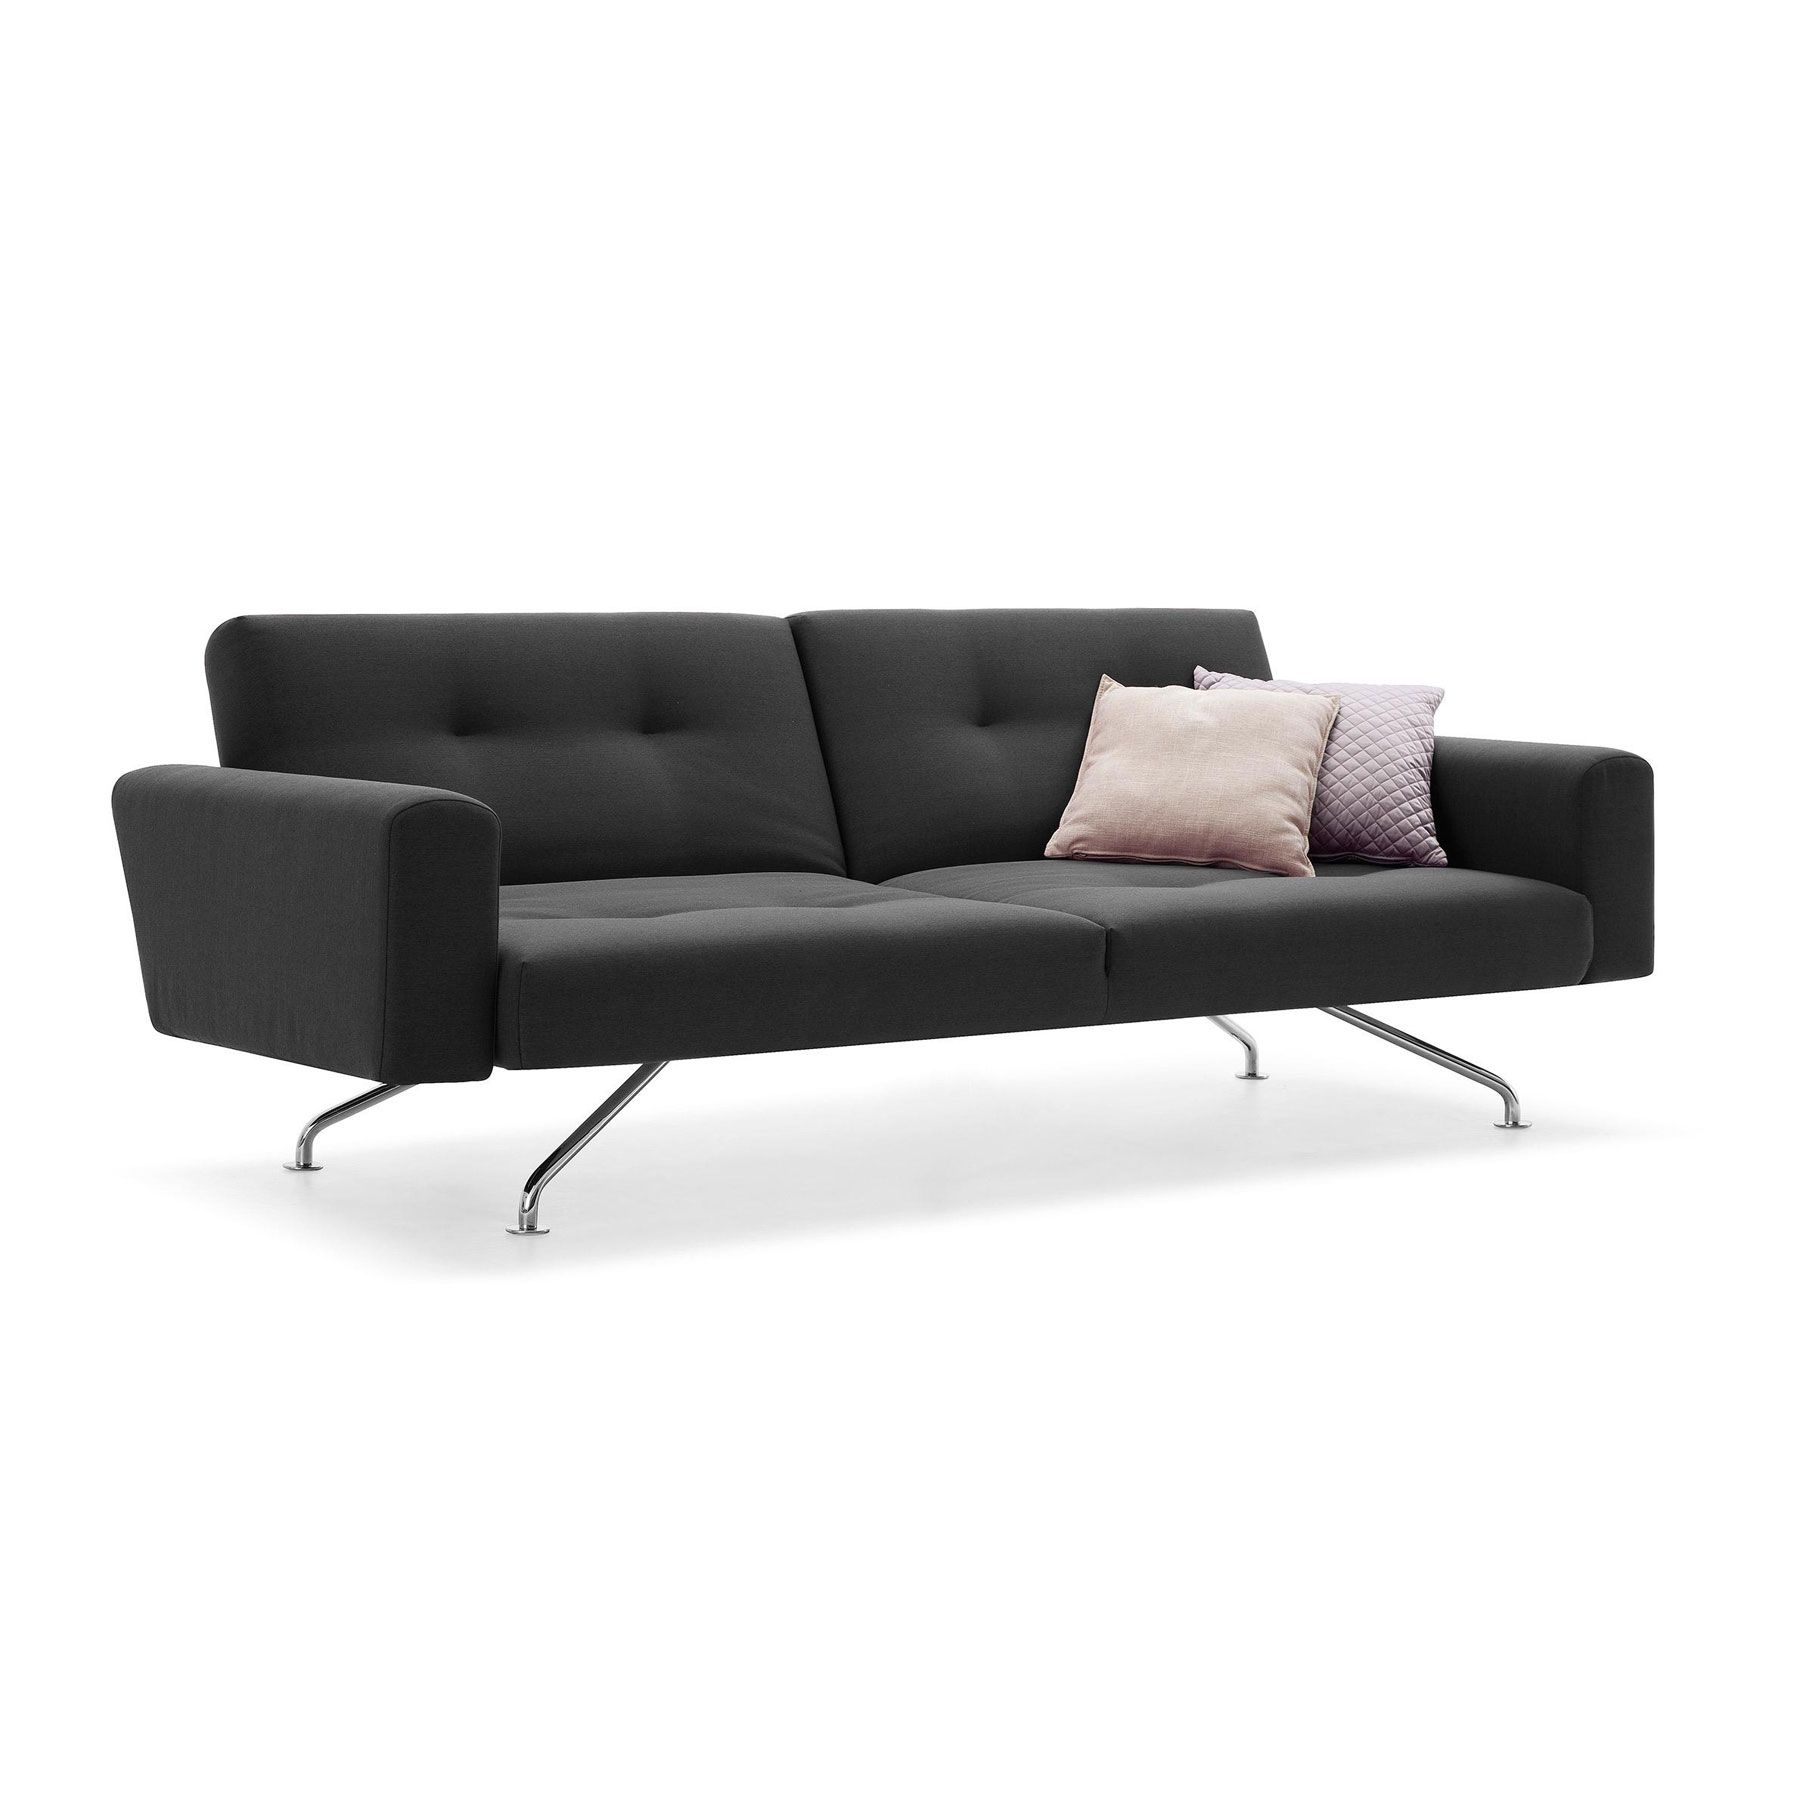 Aidan Convertible Sofa | Dotandbo (Image 5 of 20)